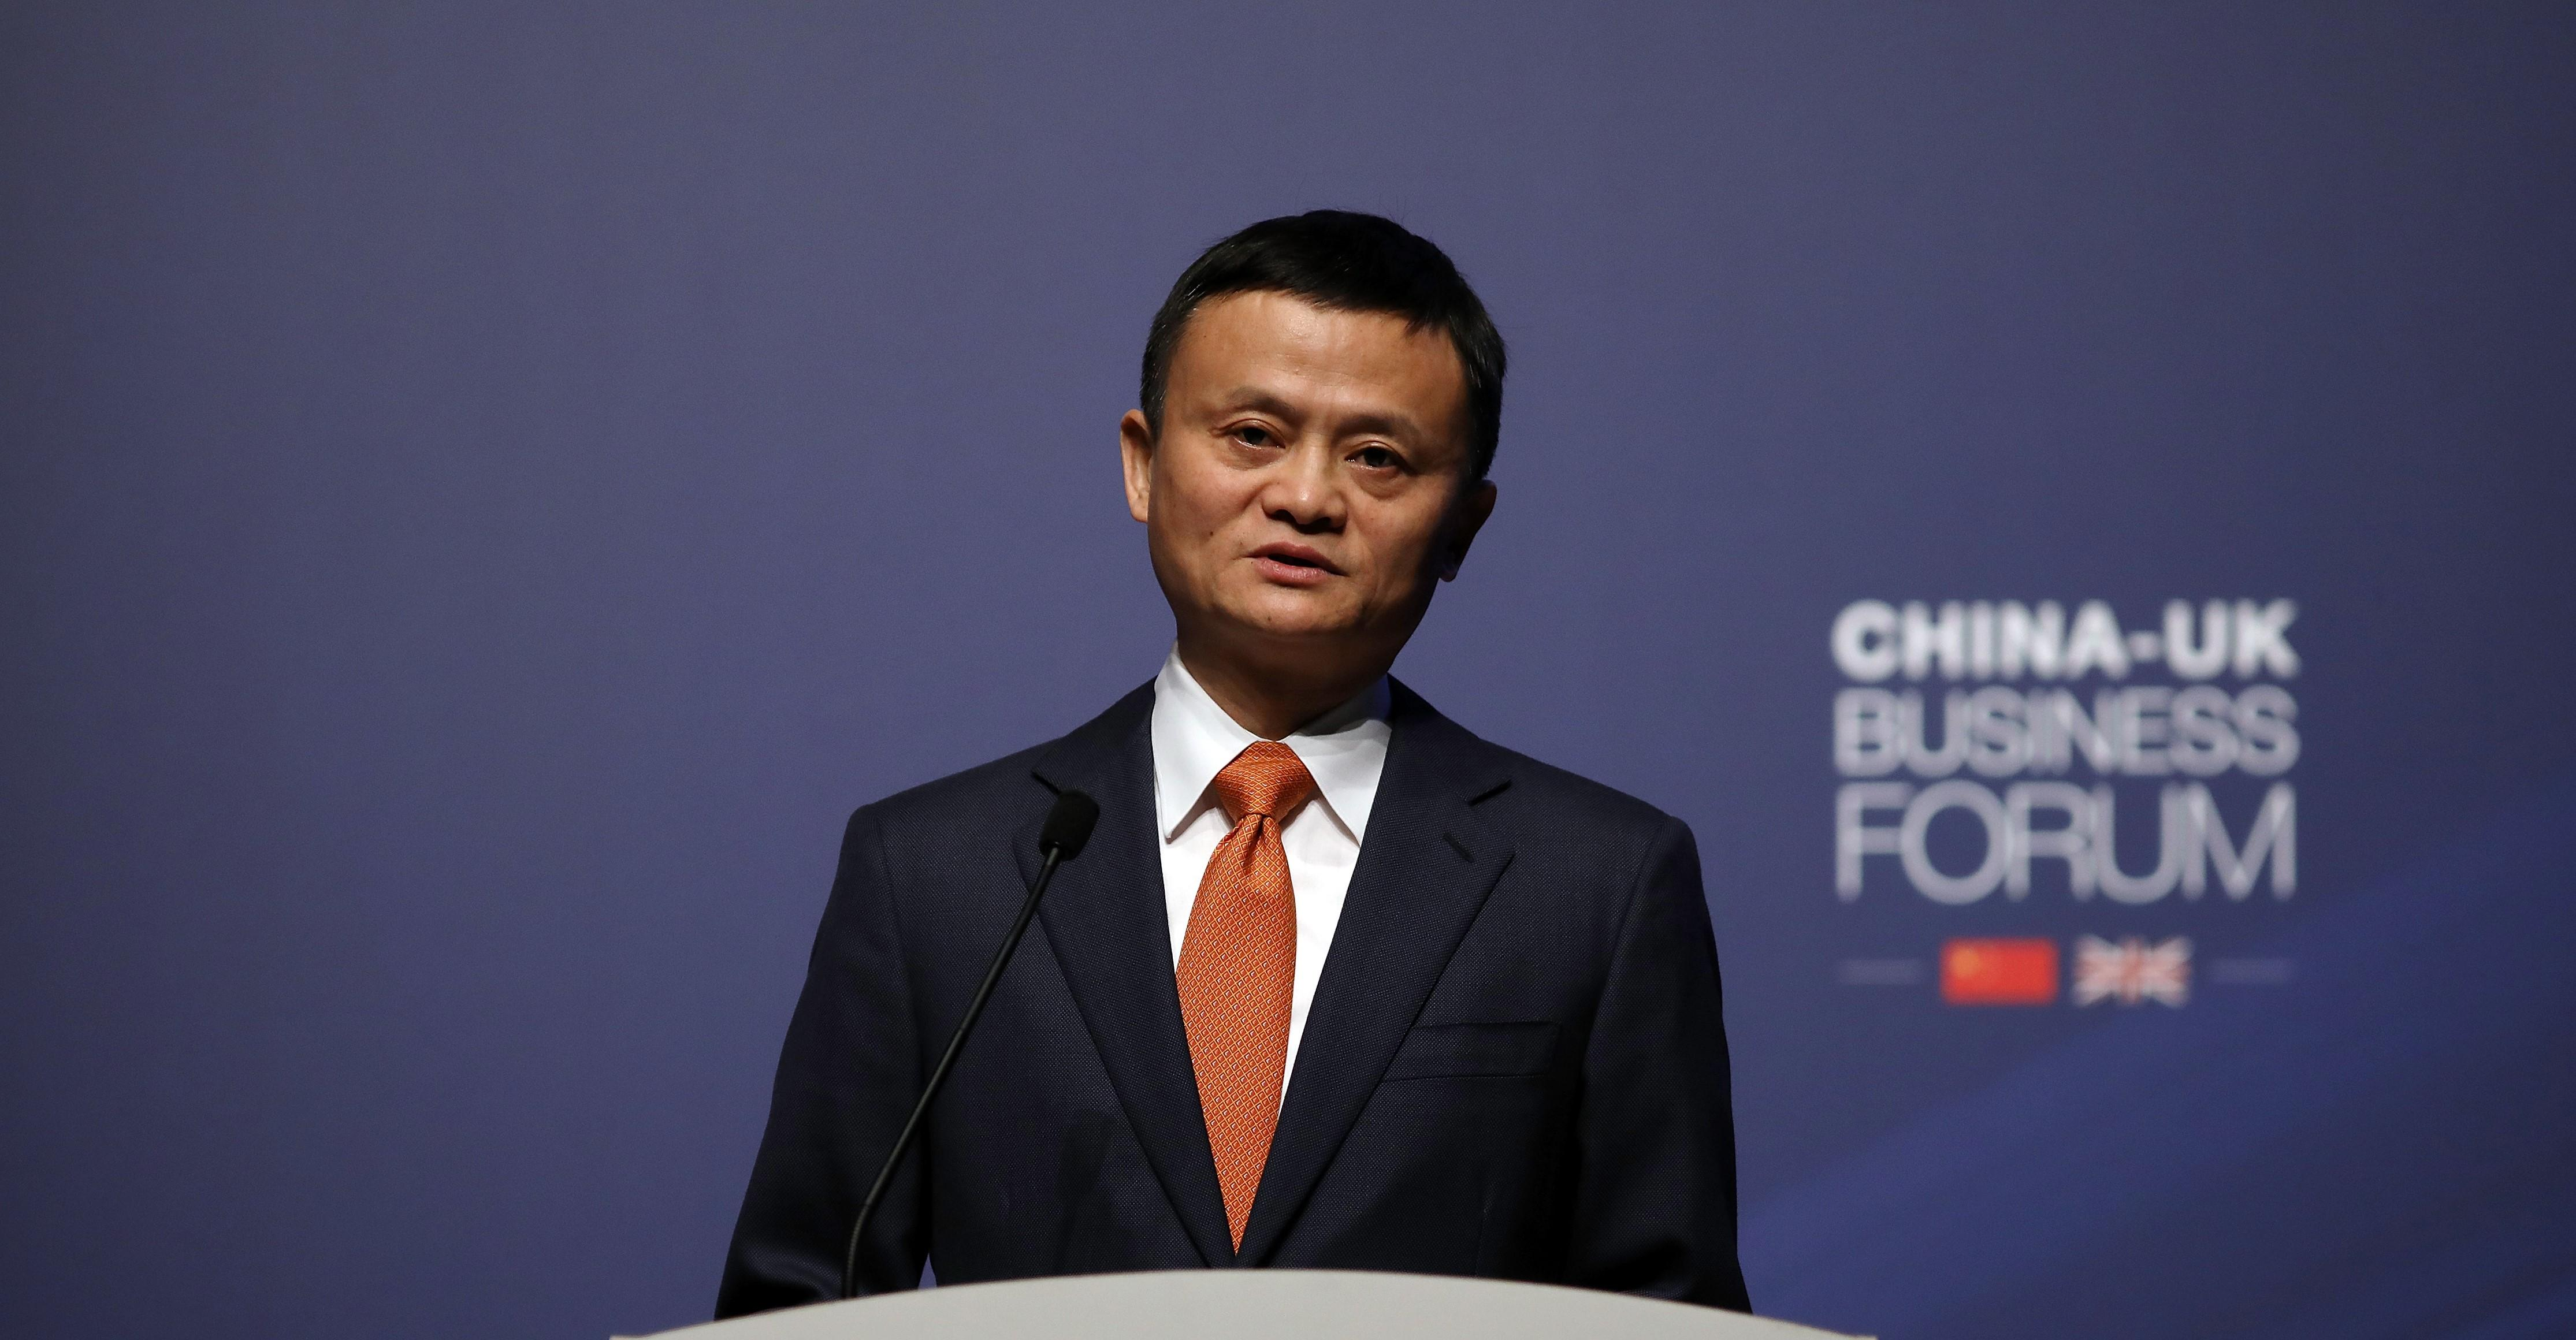 When Will the Ant Financial IPO Return Now That Jack Ma Has Resurfaced?